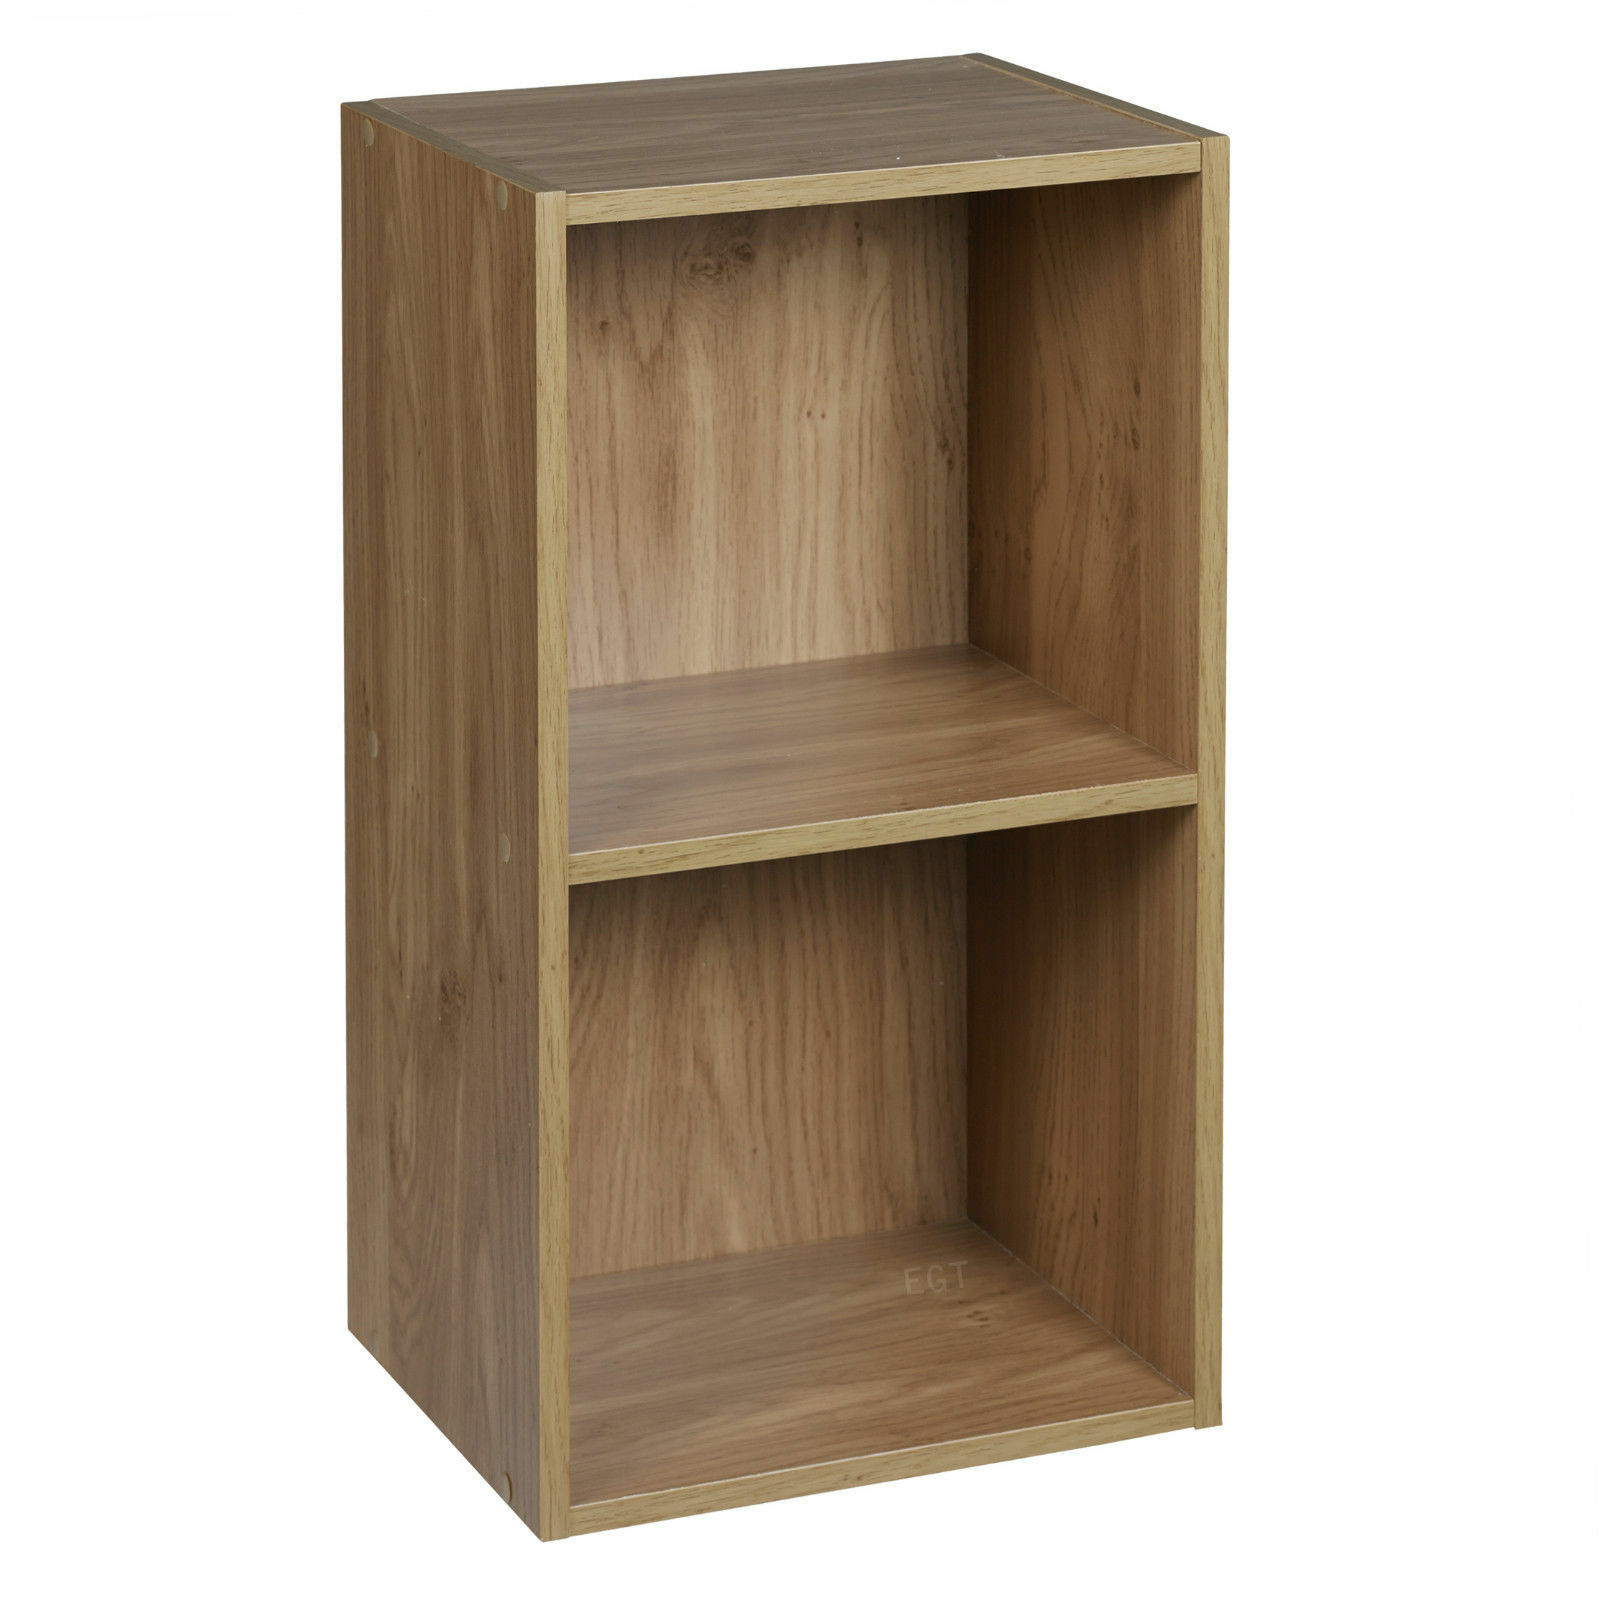 storage shelving unit oak colour 1 2 3 4 tier wooden book display 26895